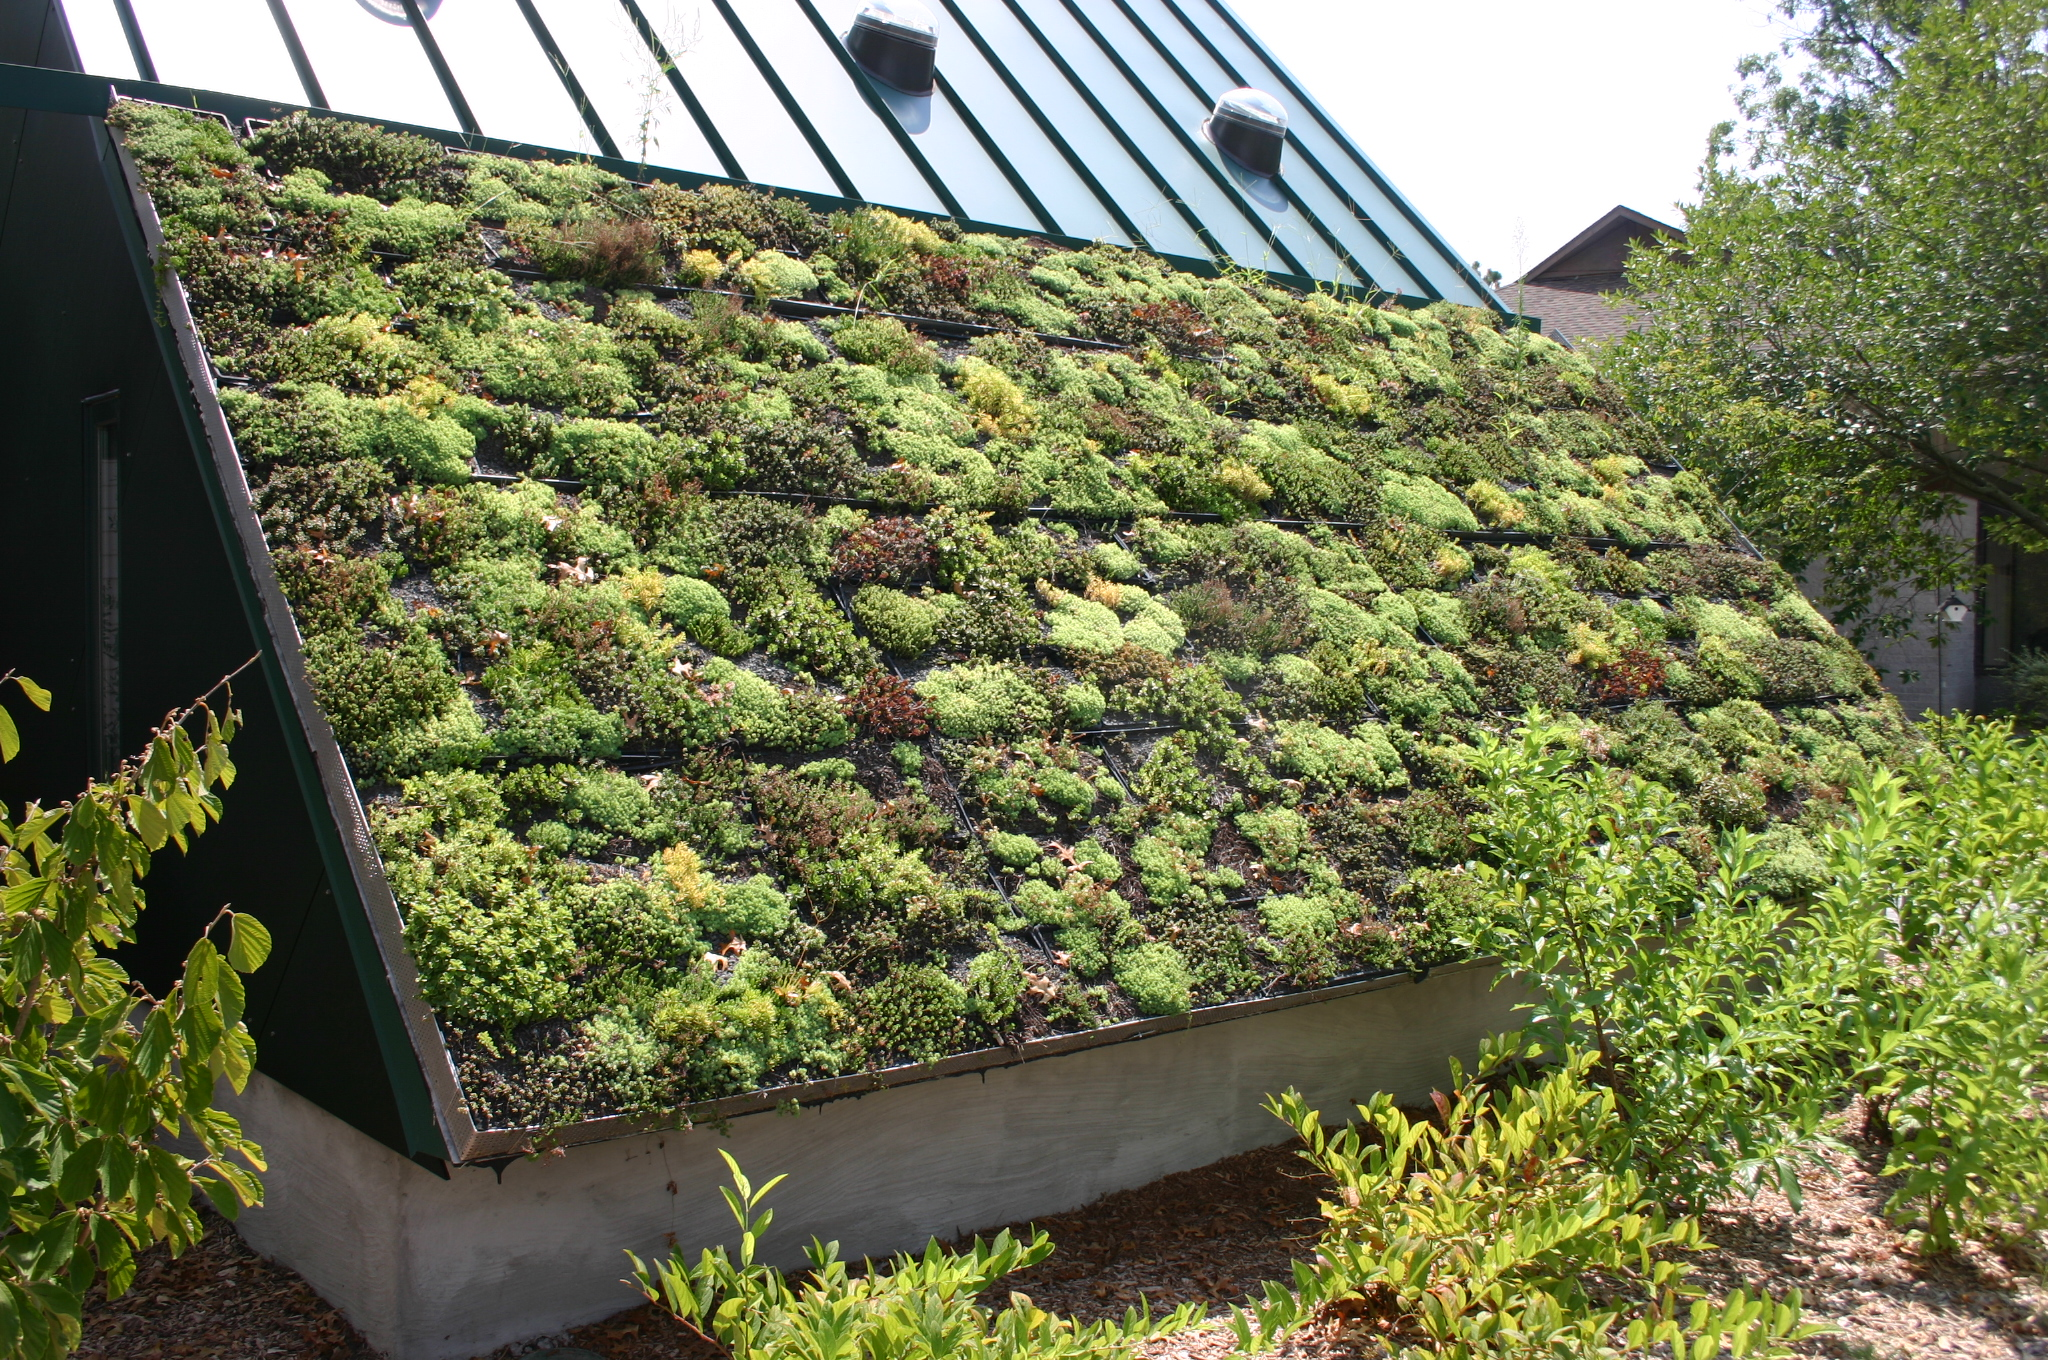 FileAwesome Green Roofjpg Wikimedia Commons